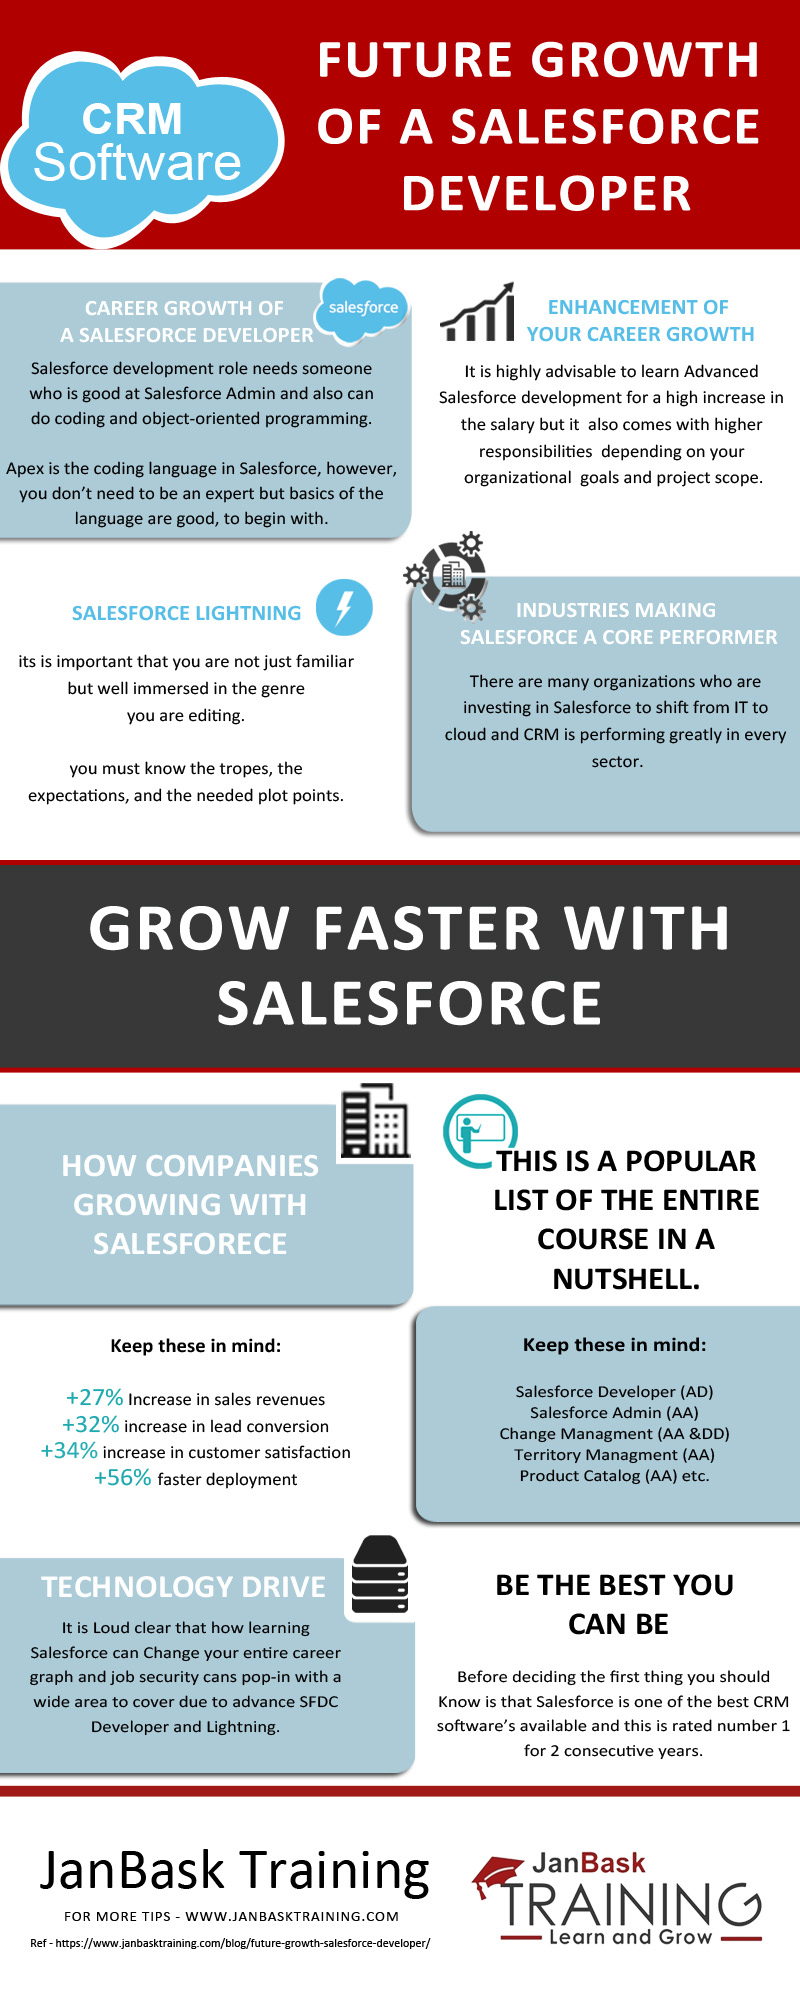 Future Growth of a Salesforce Developer infographic